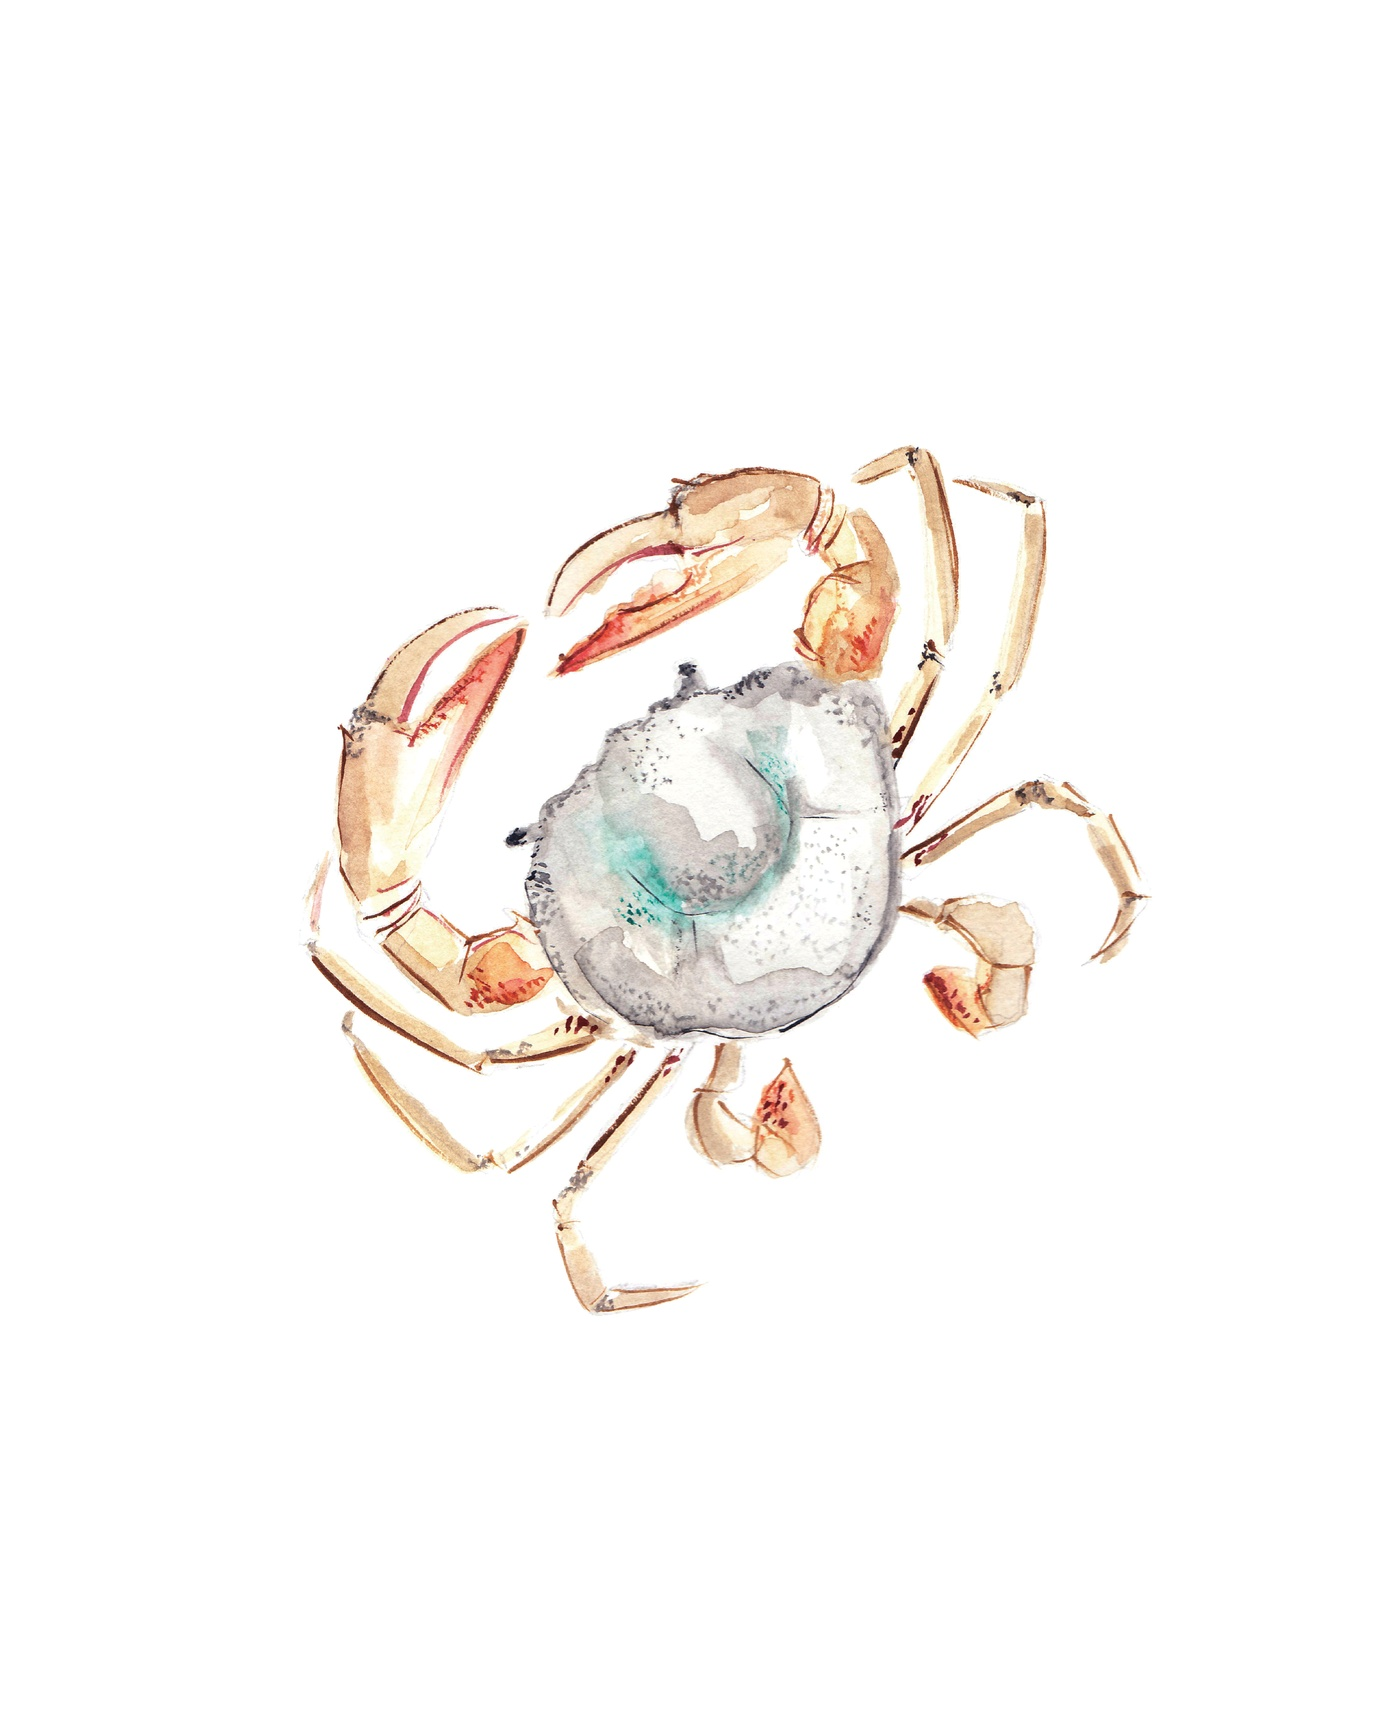 Carolie Joly Illustrations - Le crabe